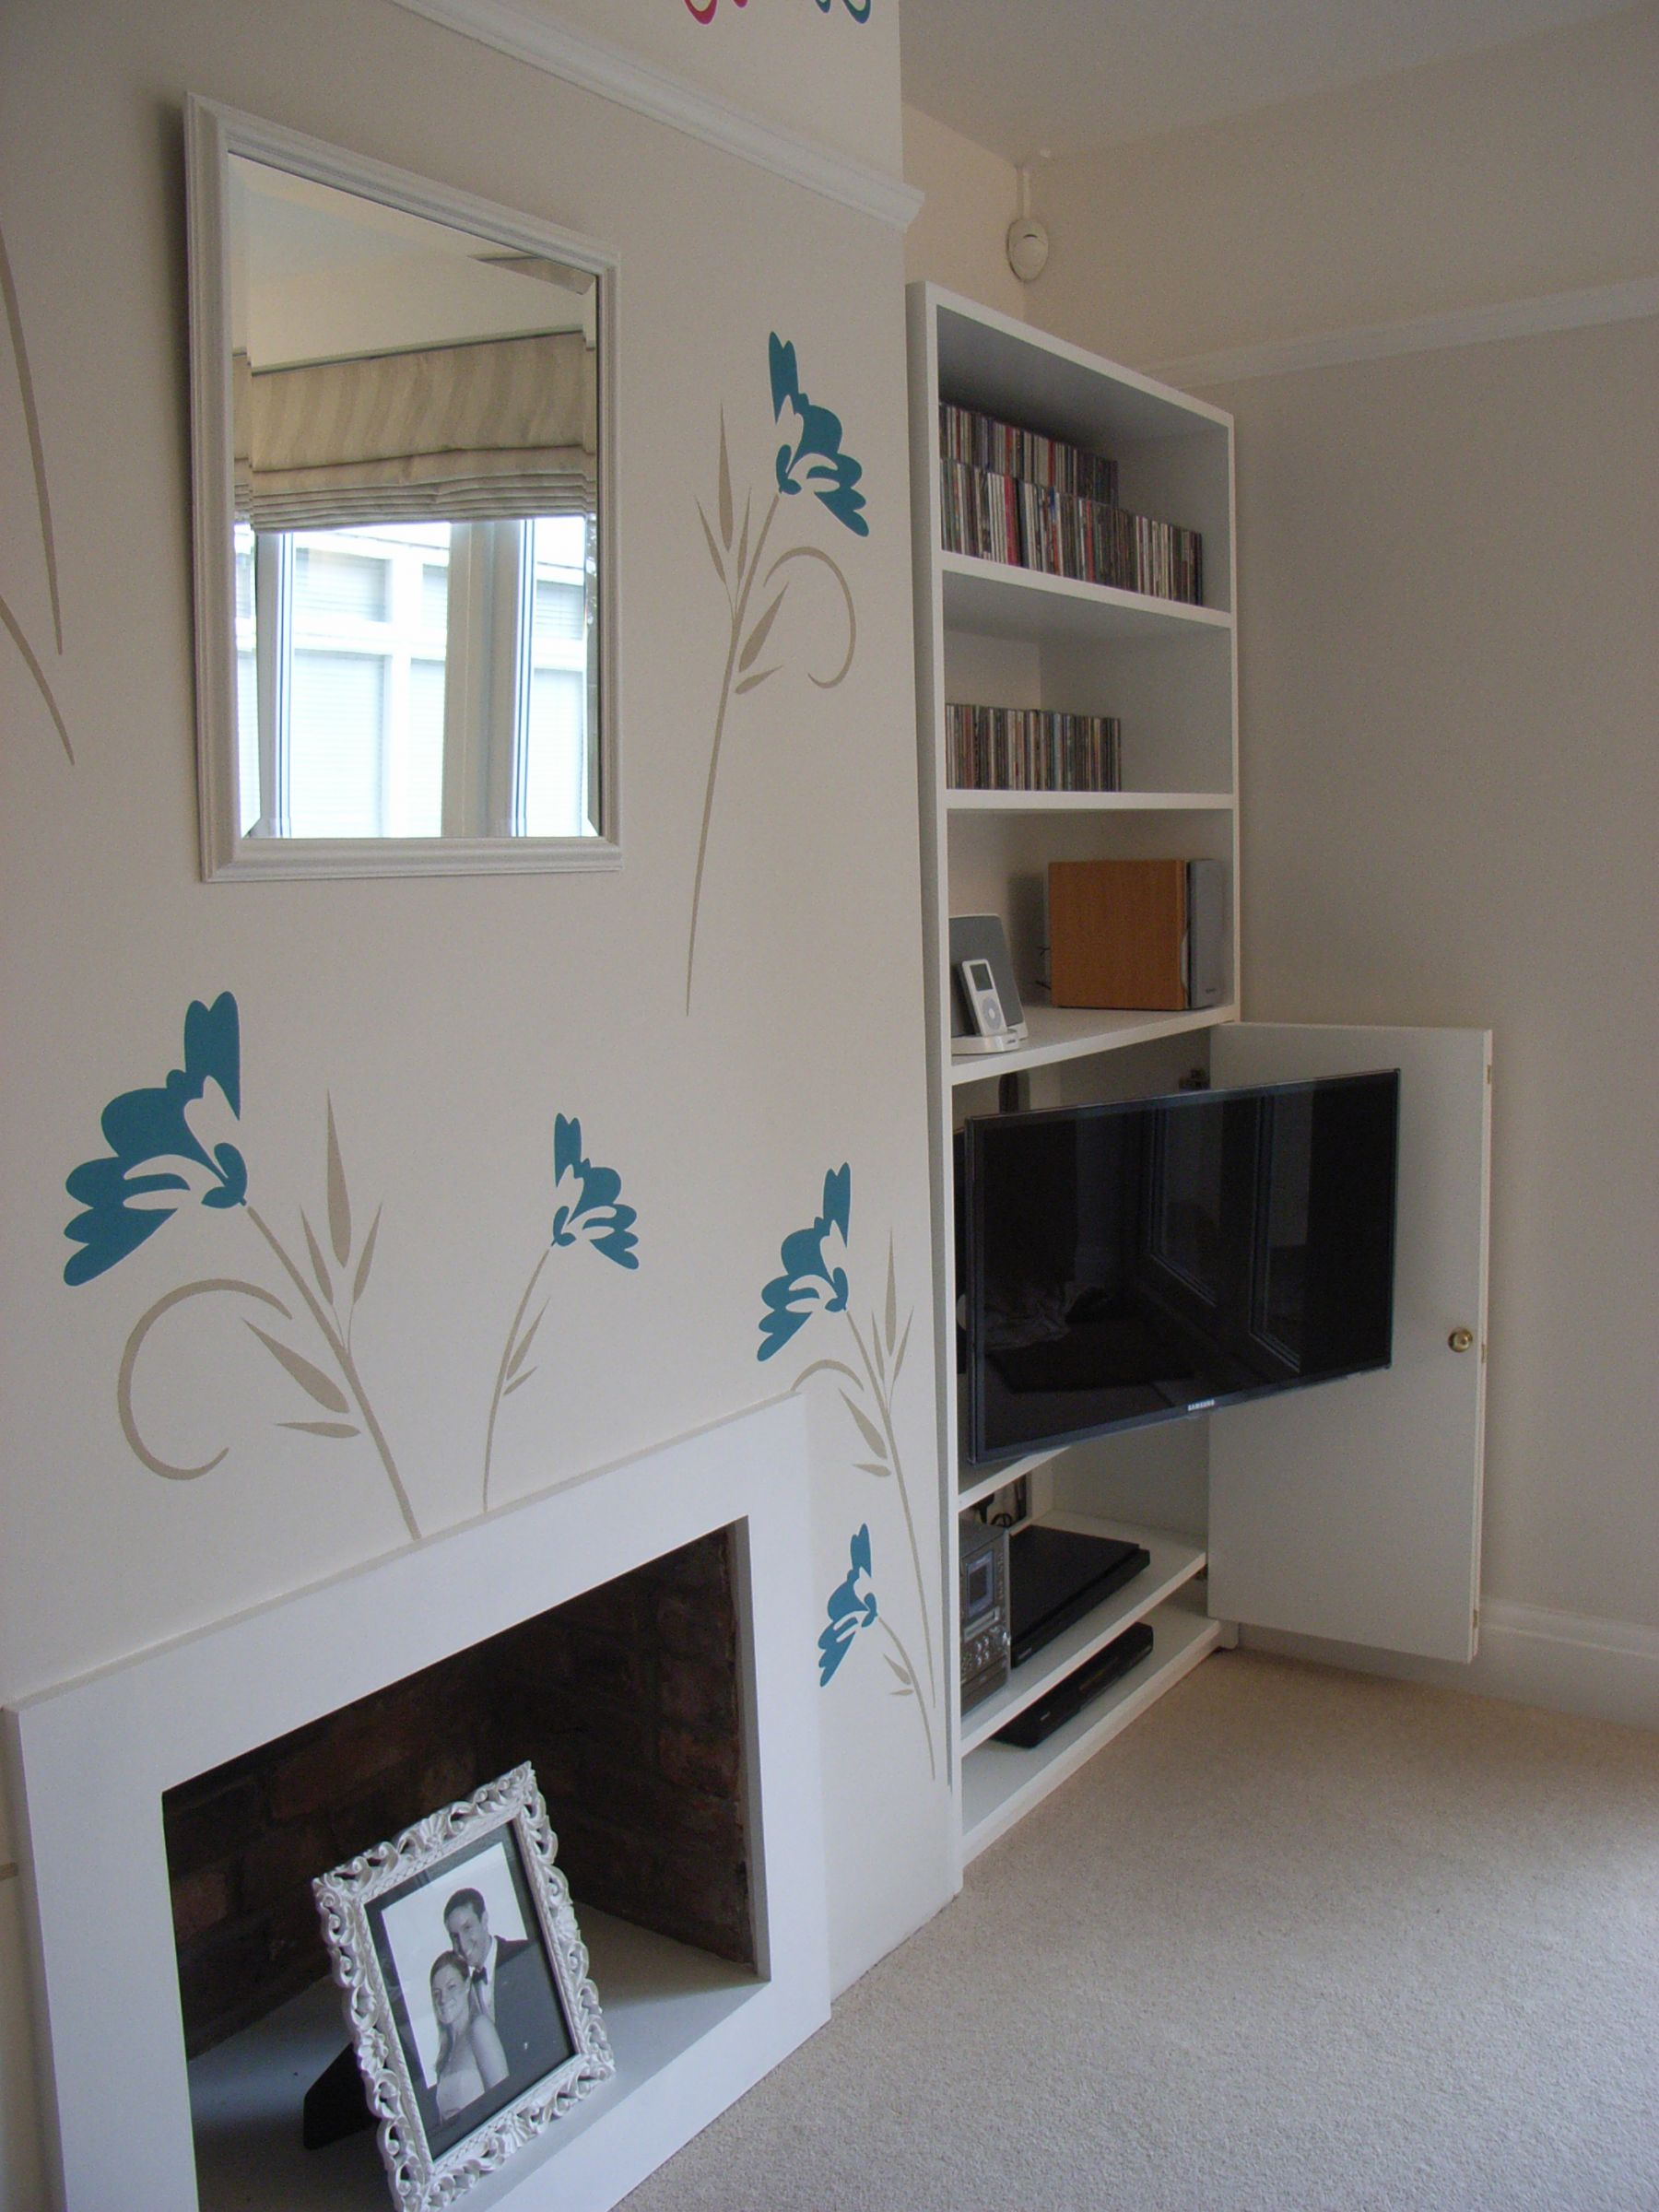 stencilled wall and TV unit